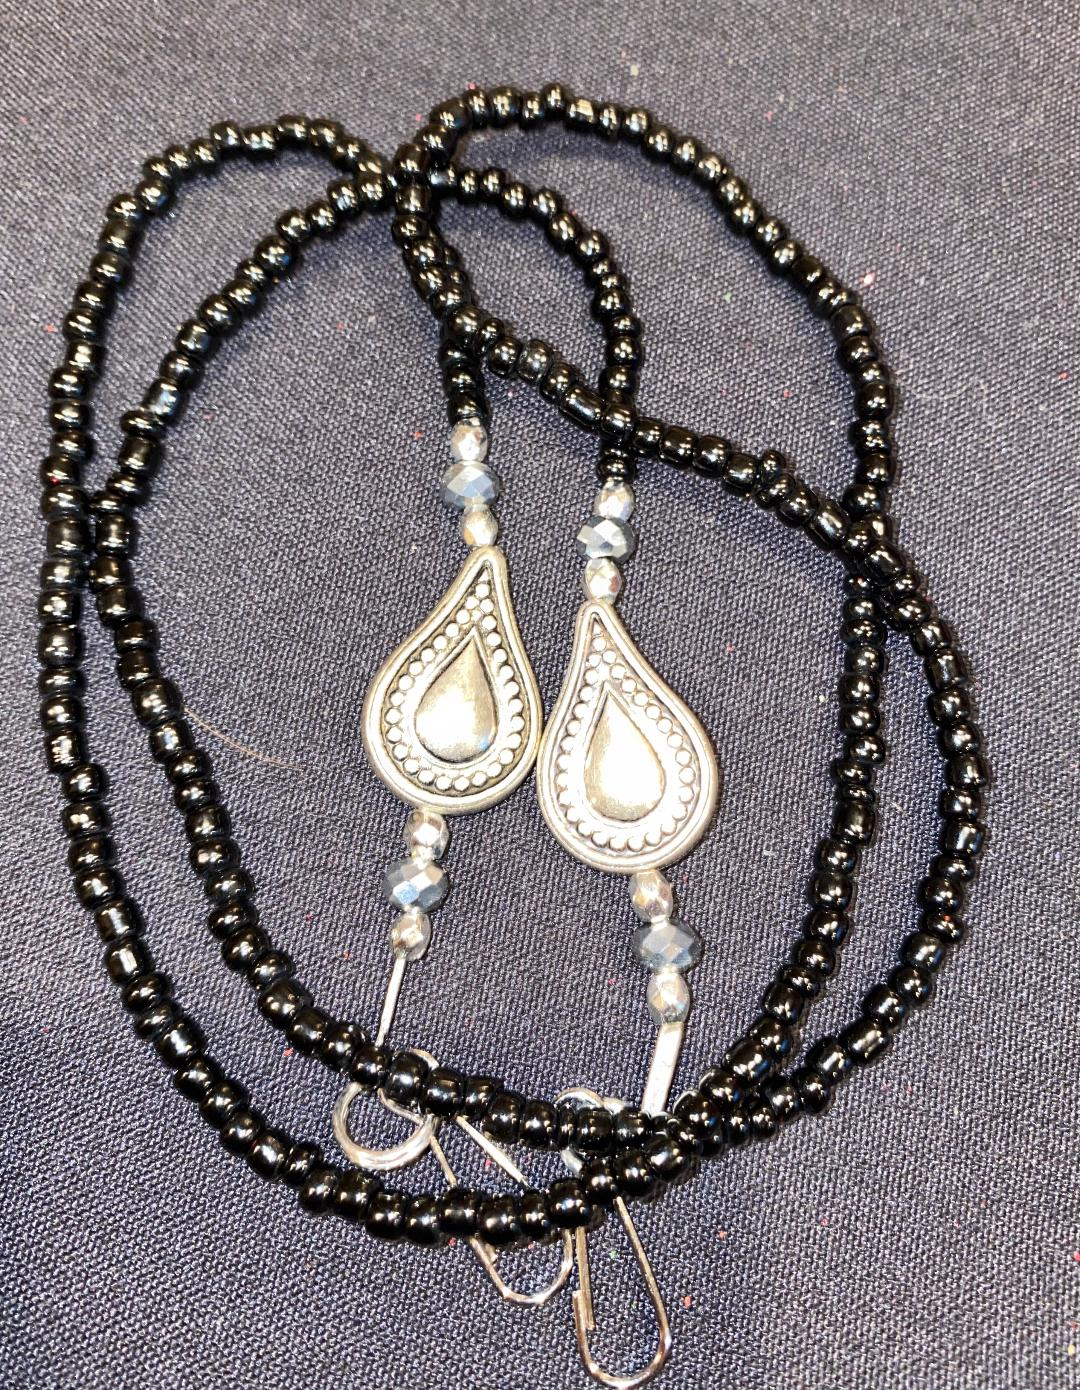 lanyard blk beads tear drop